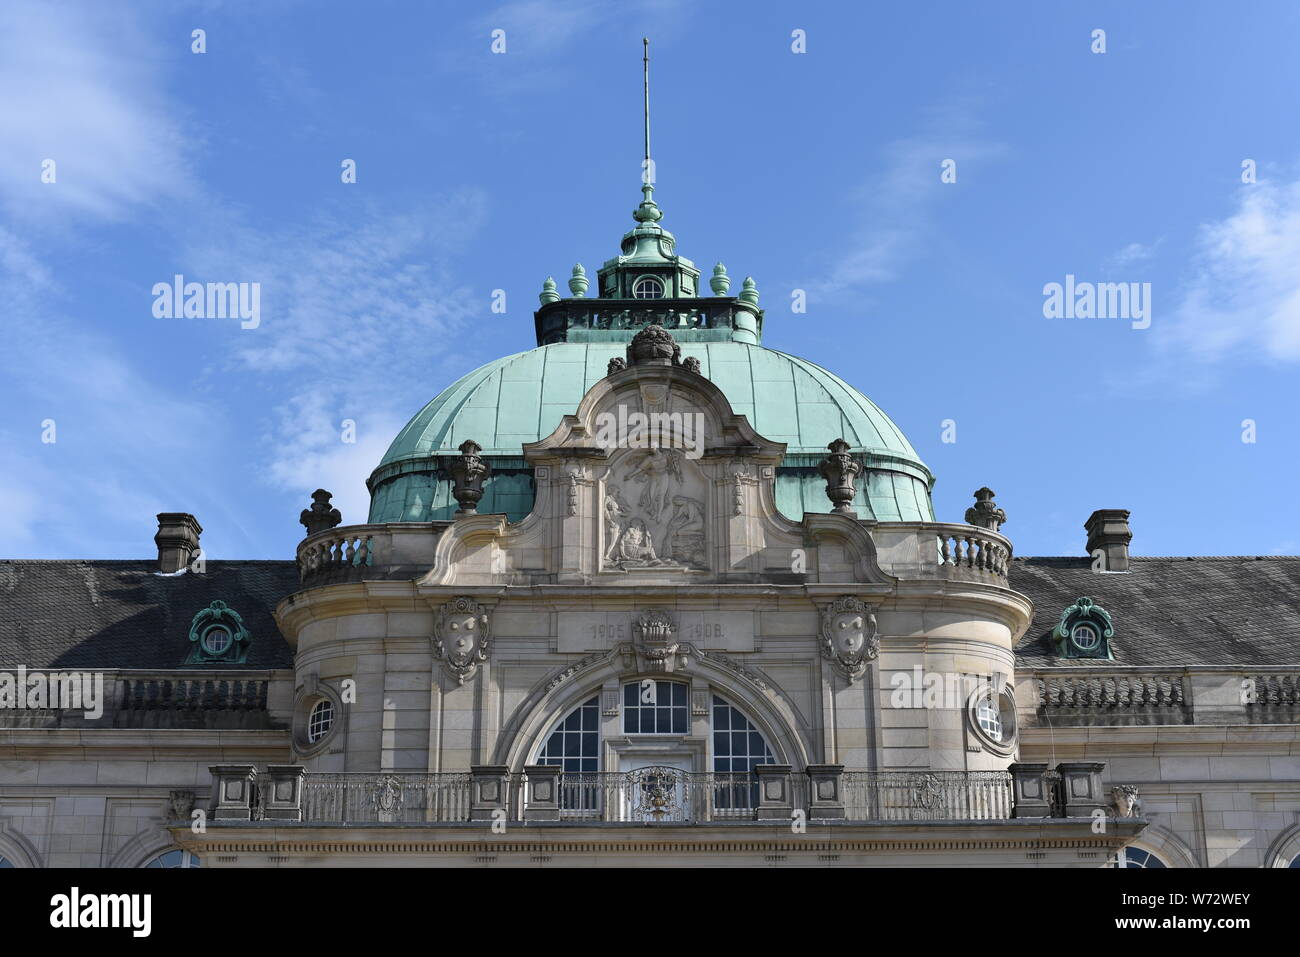 GOP Varieté-Theater Kaiserpalais Bad Oeynhausen, green roof , copper roof, old building, Bad Oeynhausen Stock Photo